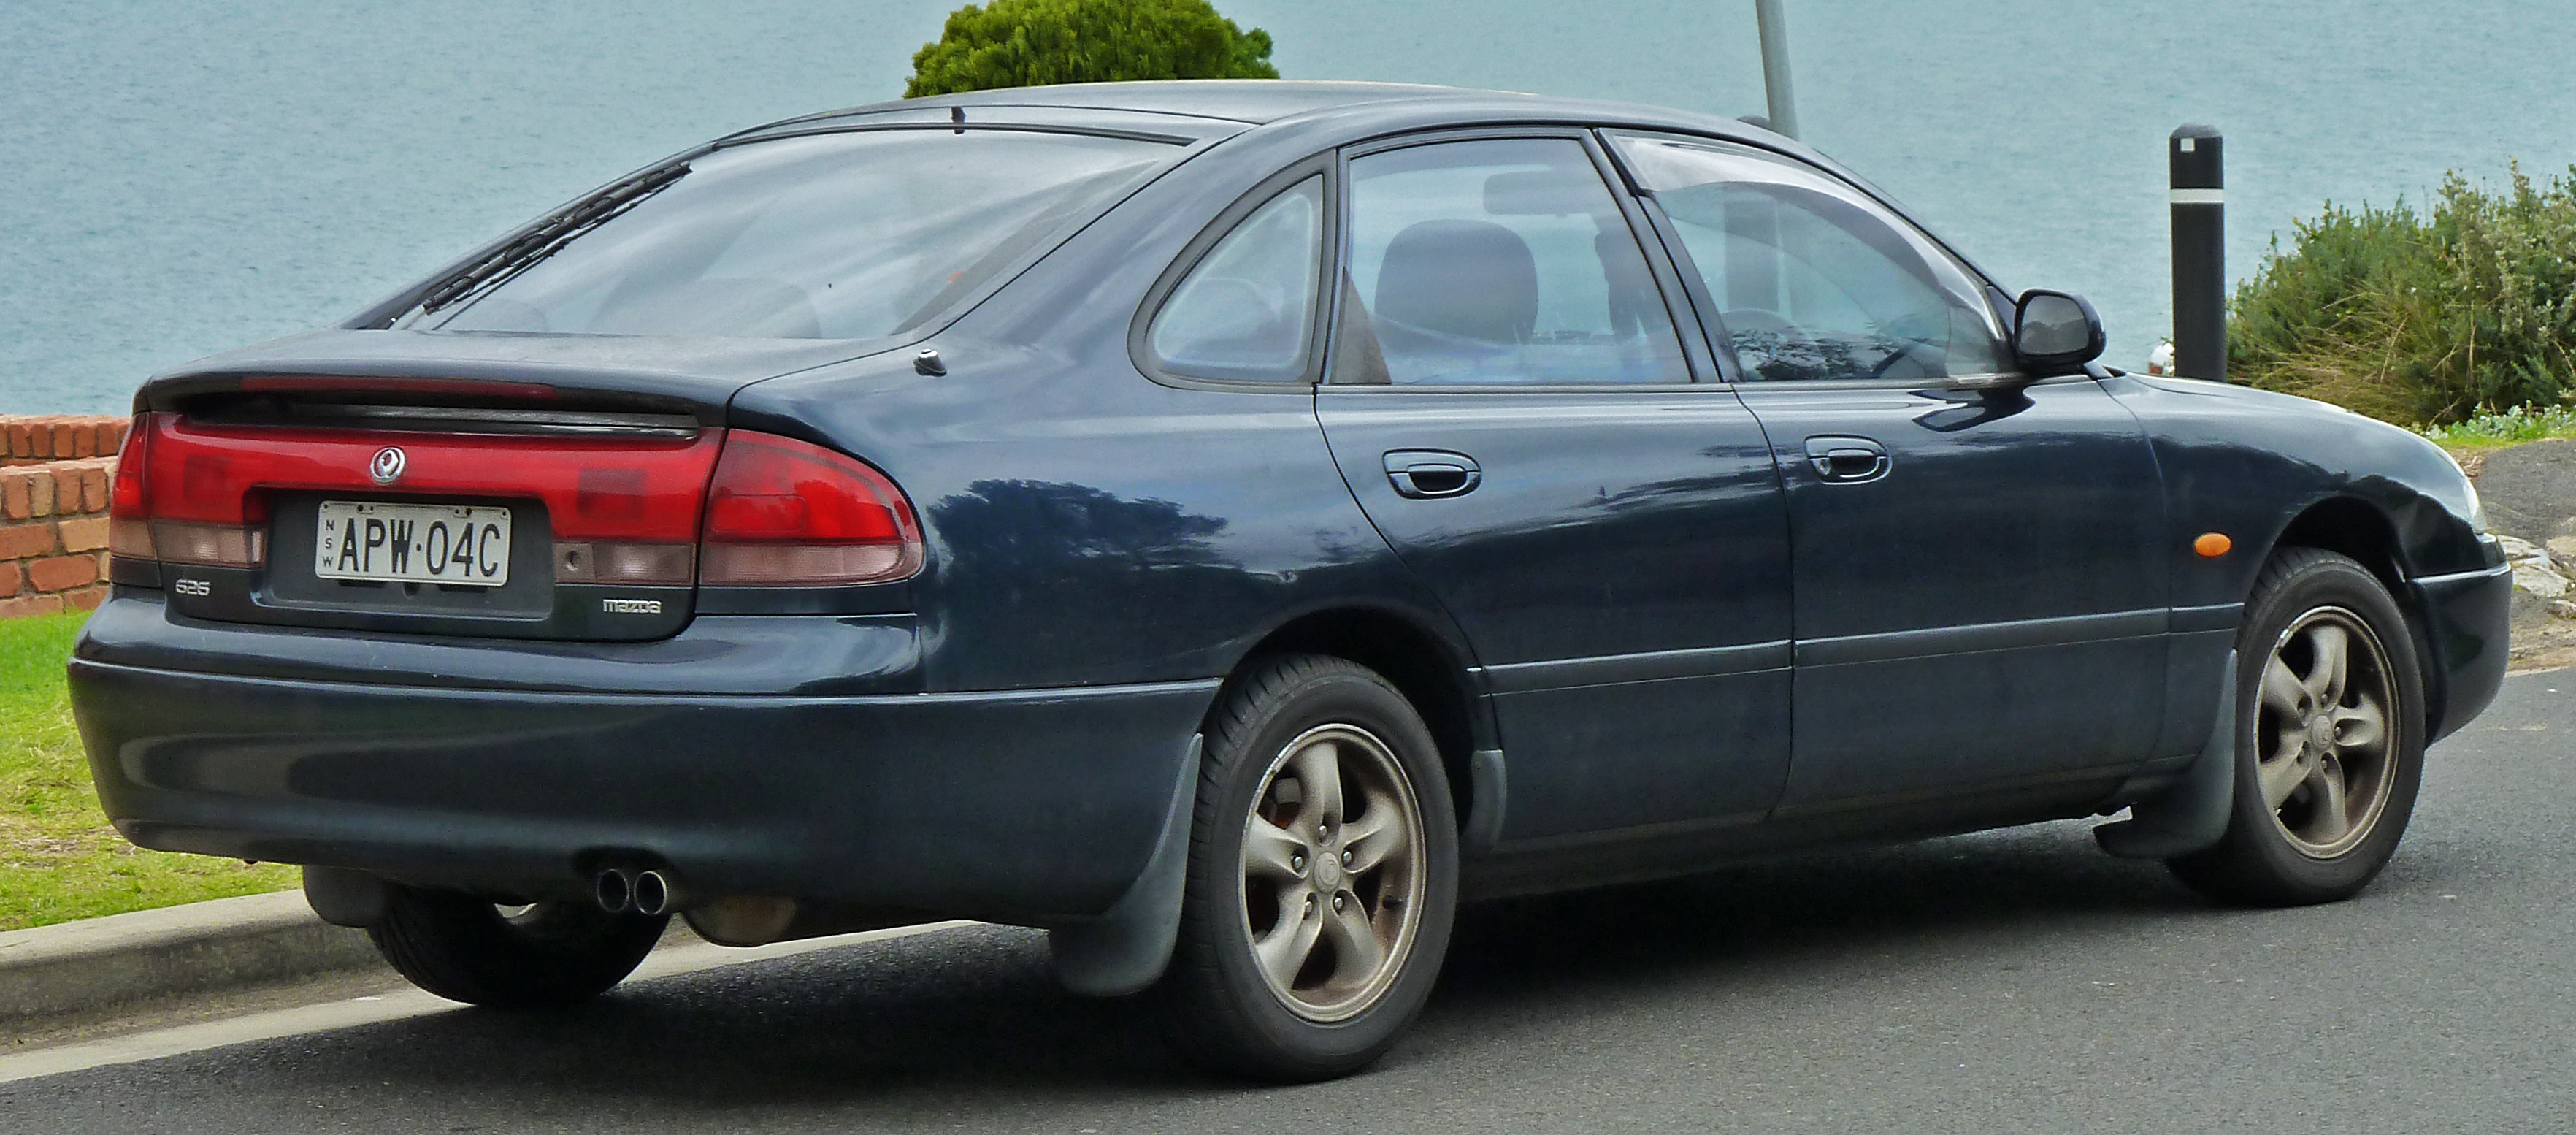 Download all mazda 626 1994 pictures 11 4 mb